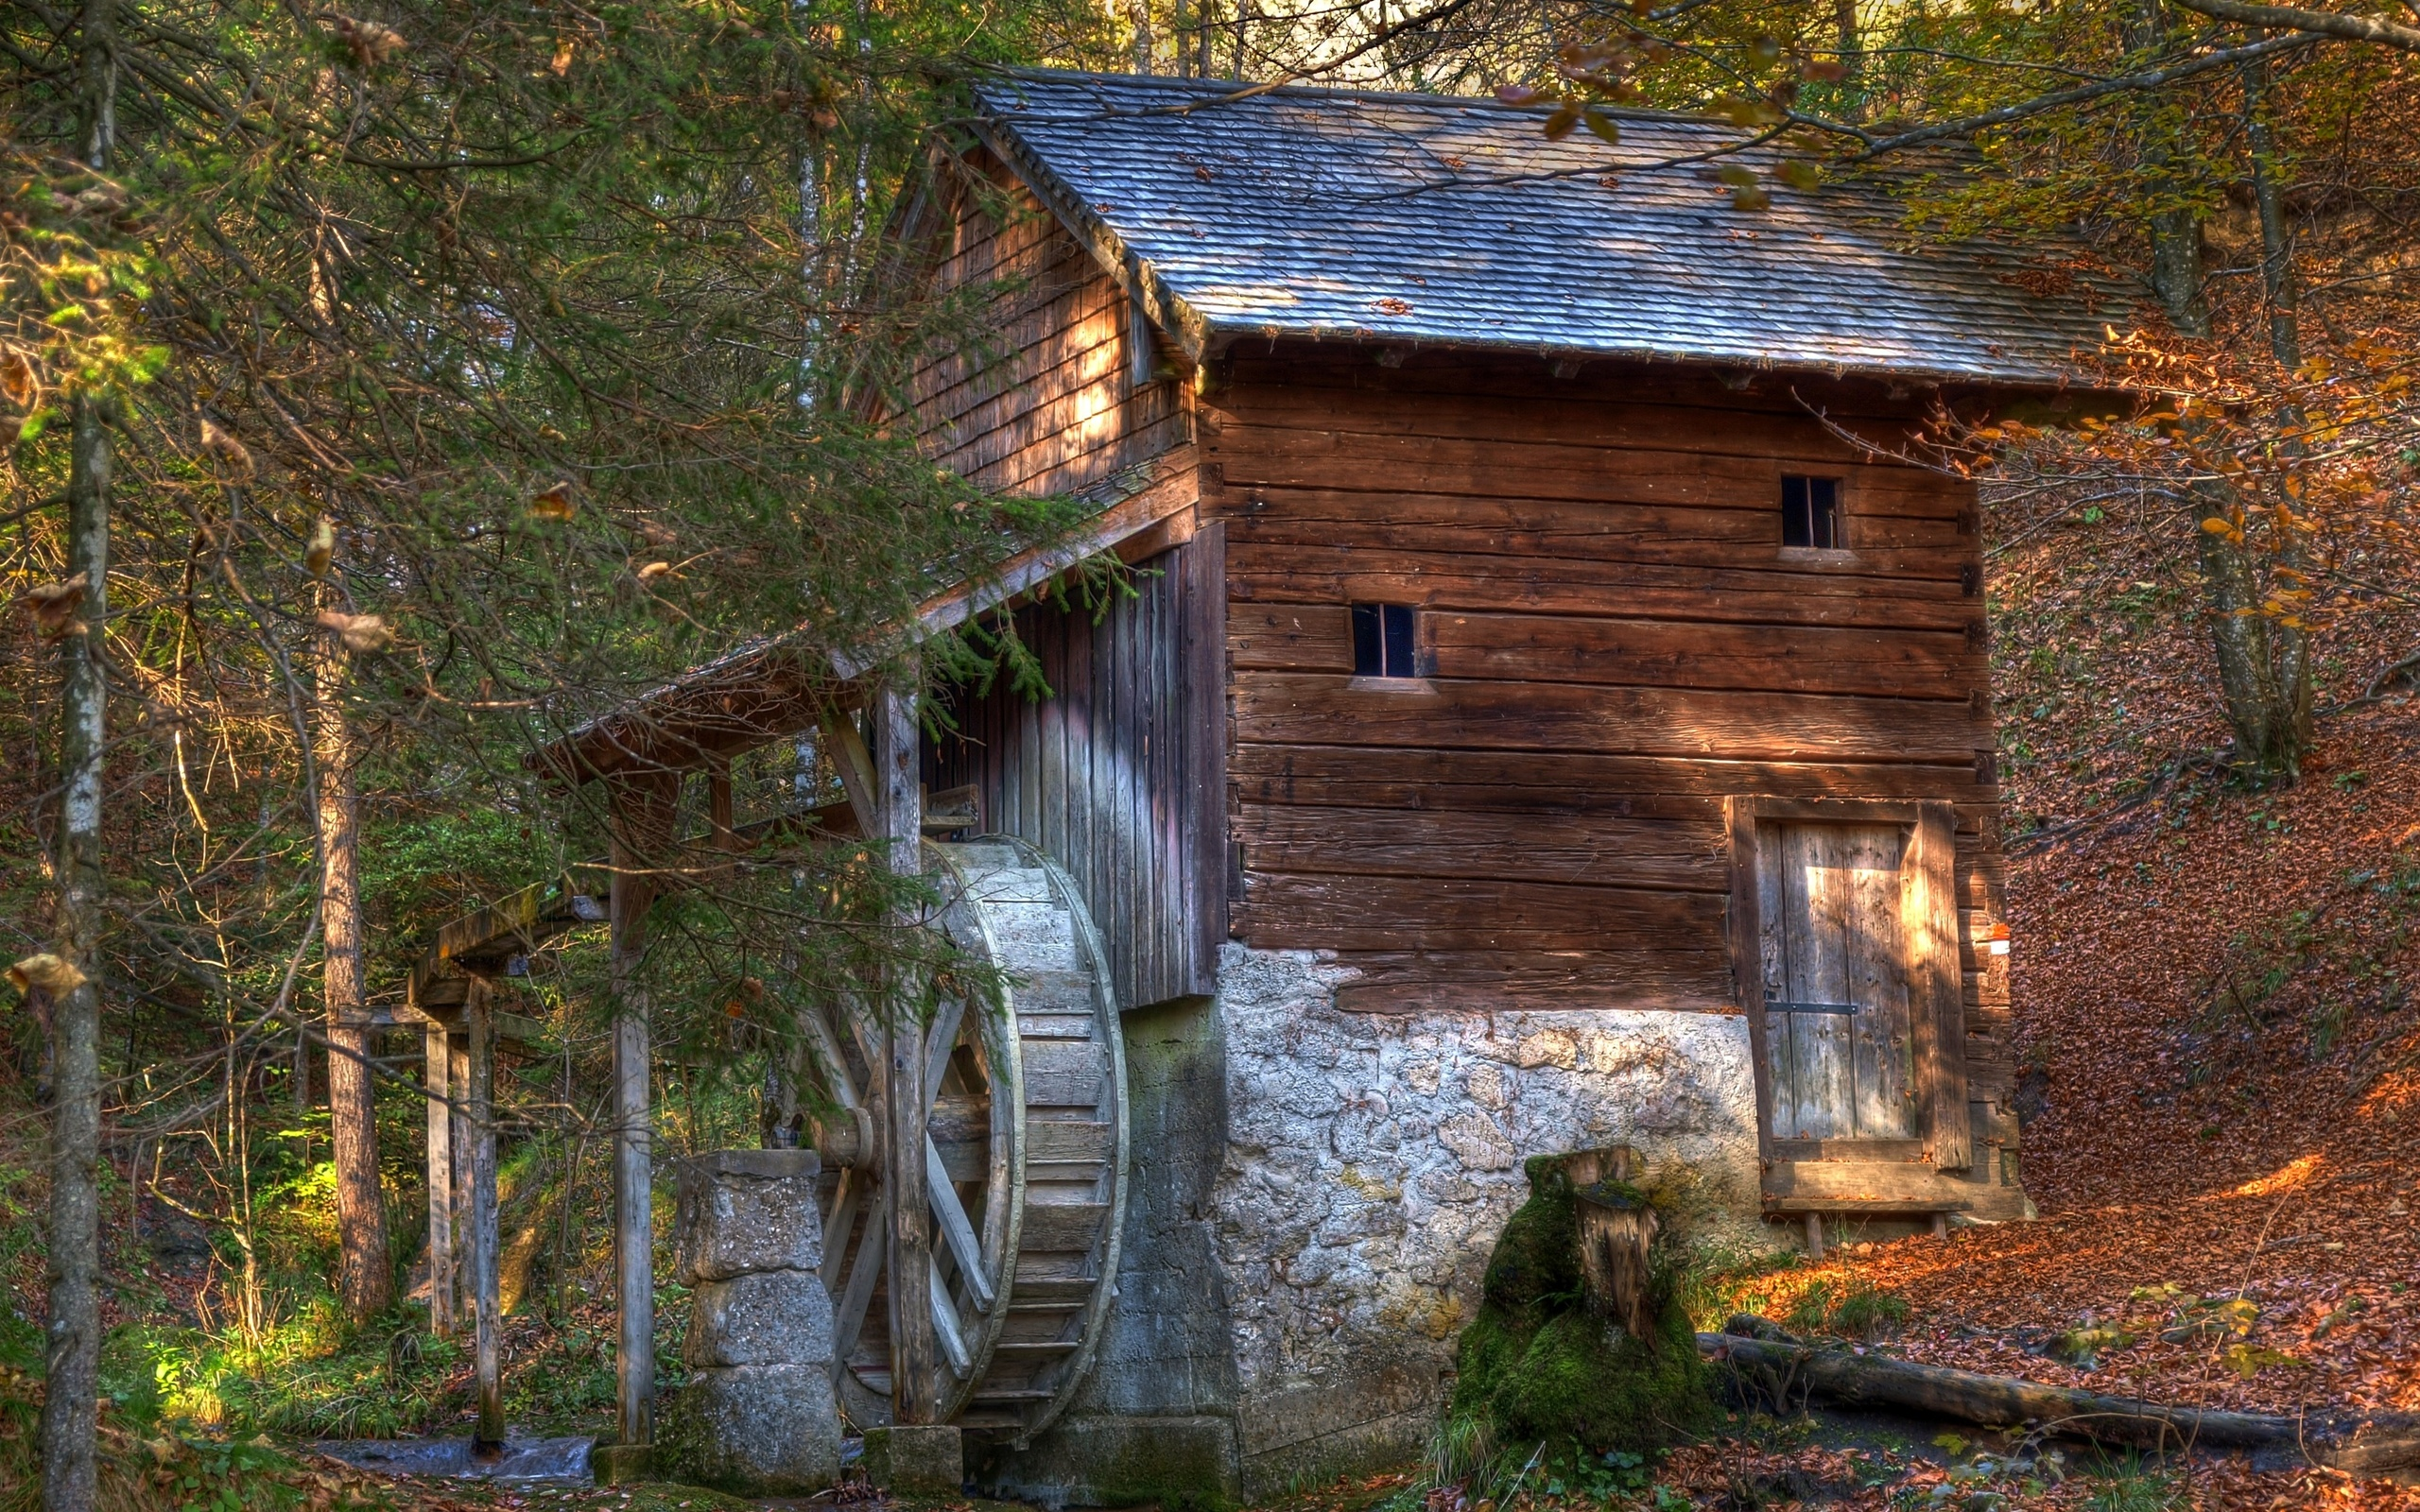 Fall Trees Wallpaper Iphone Watermill Hd Wallpaper Background Image 2560x1600 Id